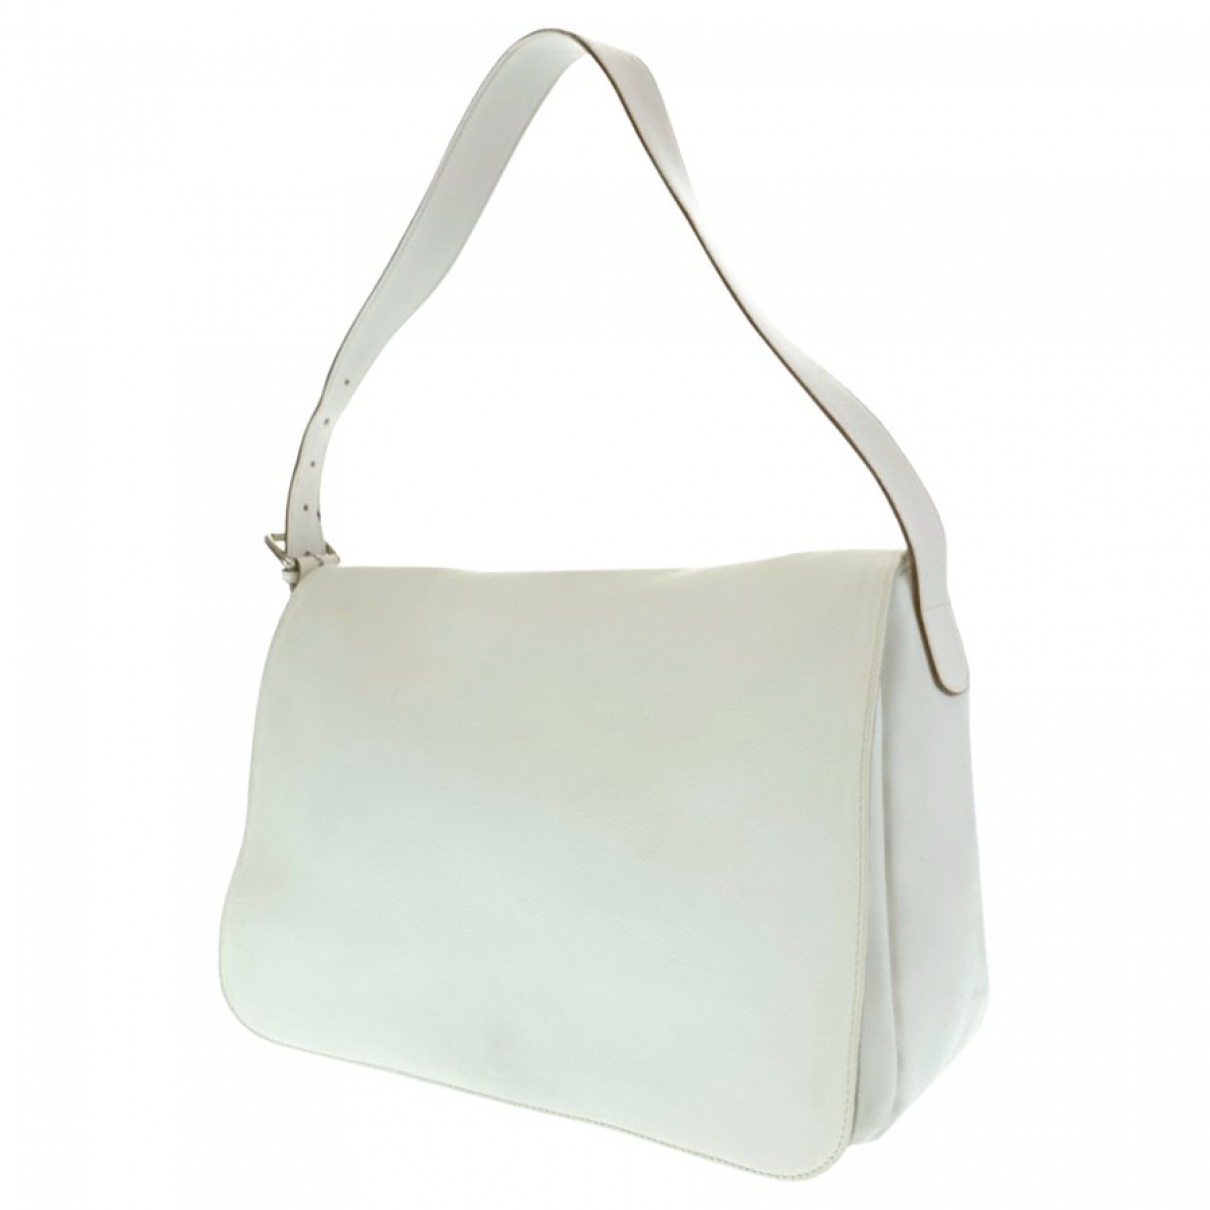 Furla \N Beige Leather handbag for Women \N